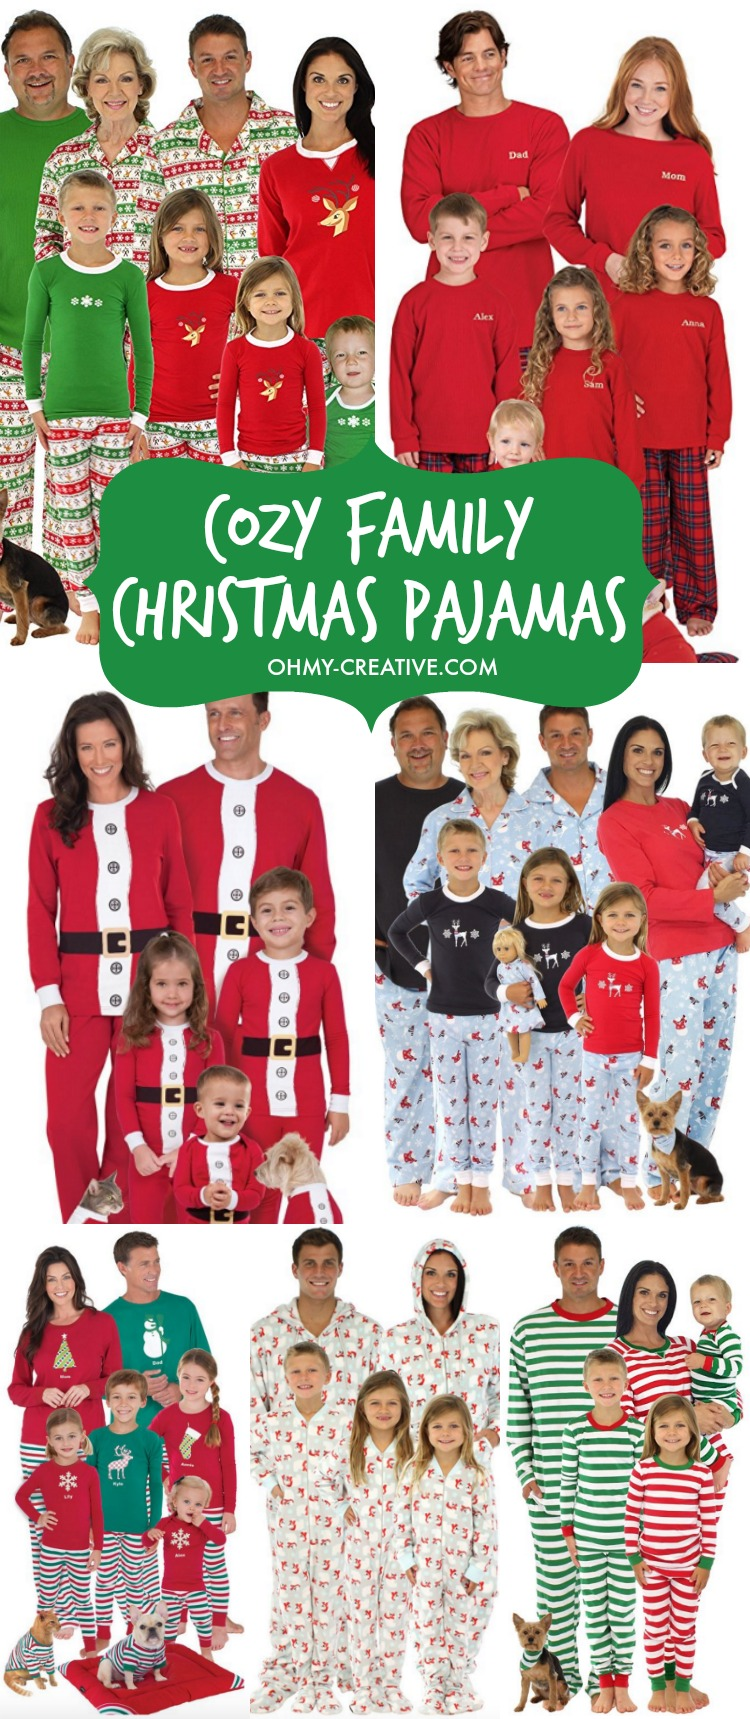 Are you looking for the best family Christmas pajamas? Here are the cutest matching pajama sets for everyone in your family (even the pets)!